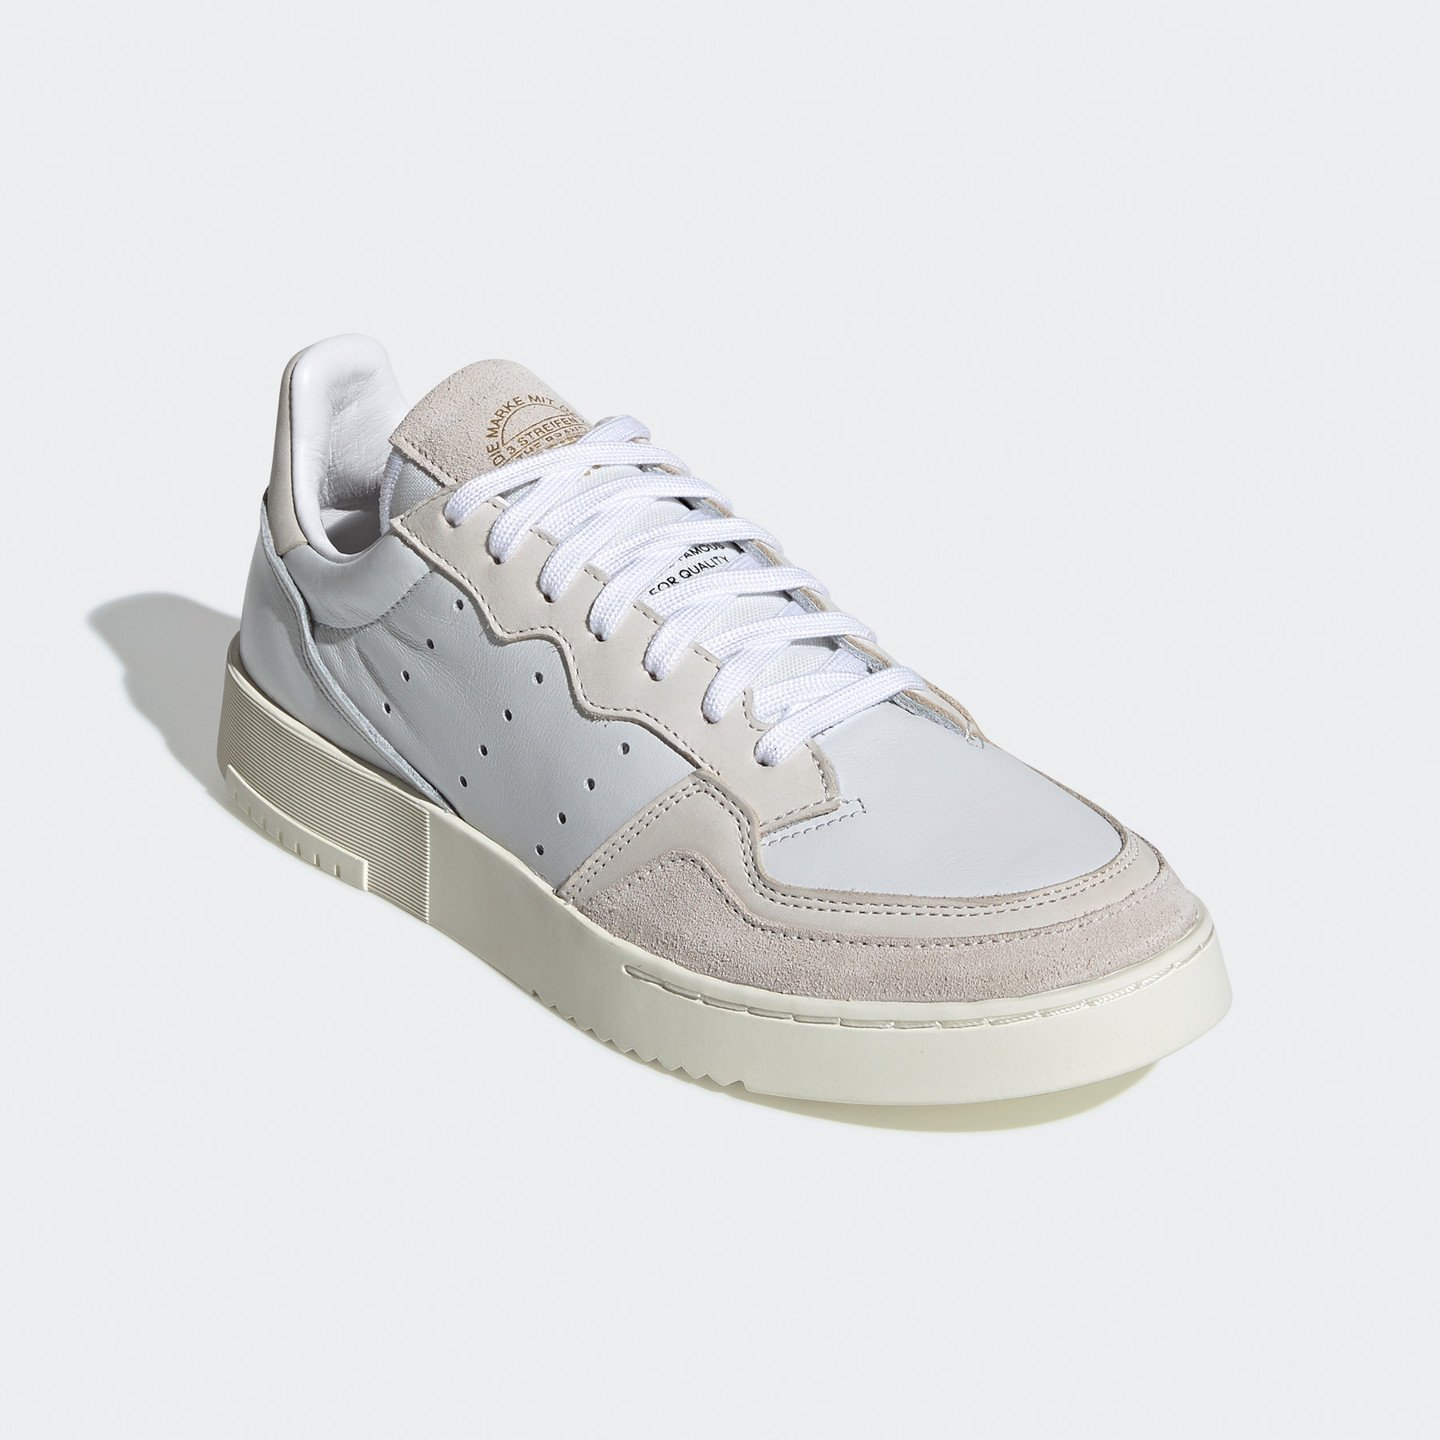 Adidas Supercourt Crystal White / Chalk White / Off White EE6024